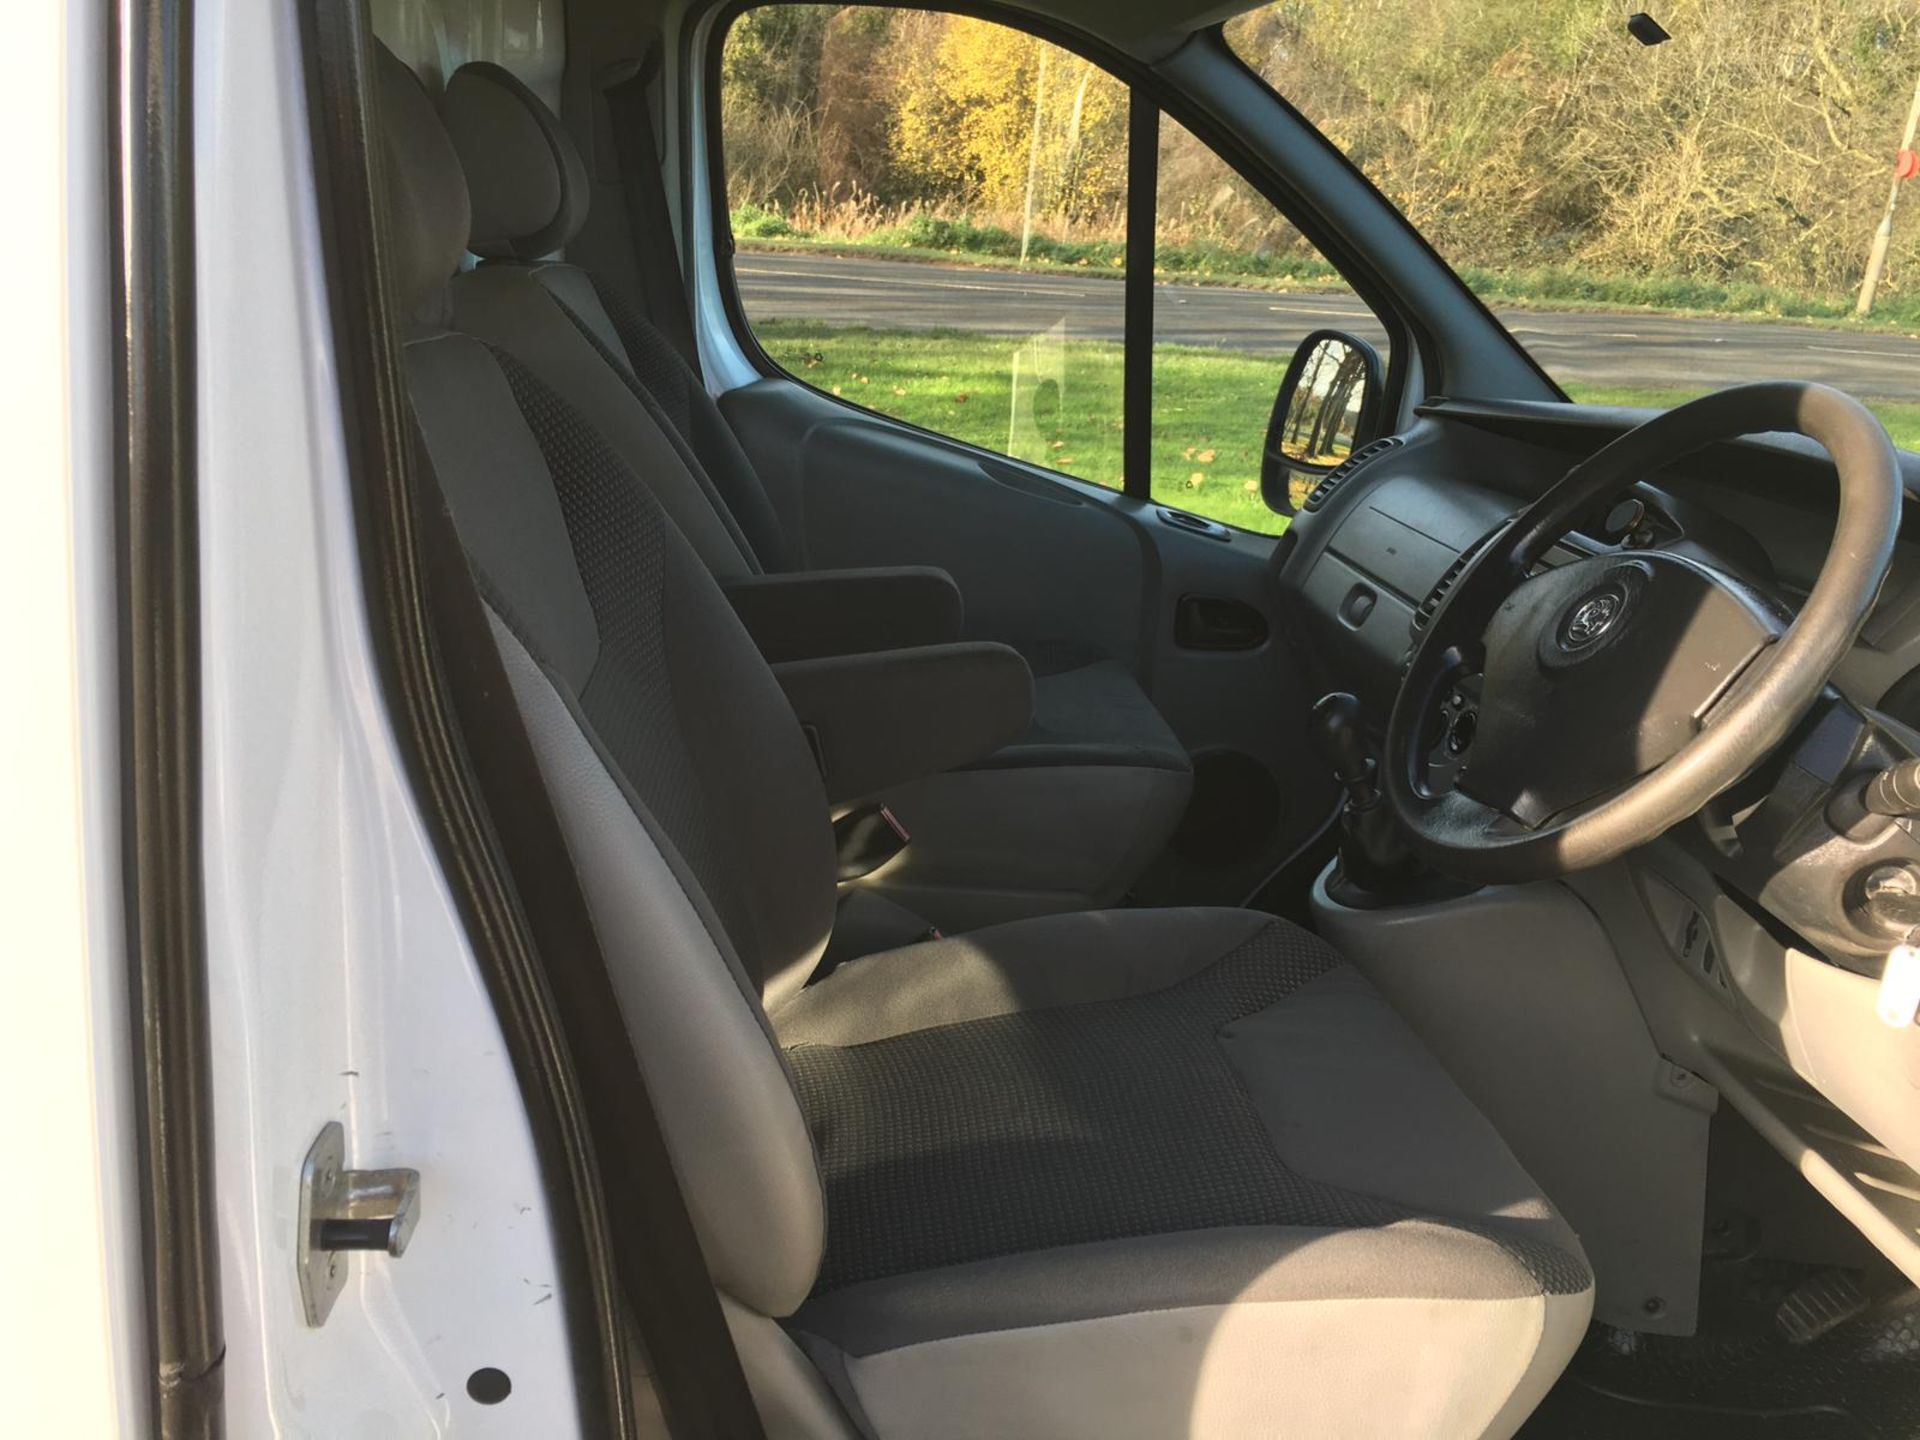 2008/58 REG VAUXHALL VIVARO 2900 CDTI SWB 2.0 DIESEL WHITE PANEL VAN, SHOWING 1 FORMER KEEPER - Image 7 of 12